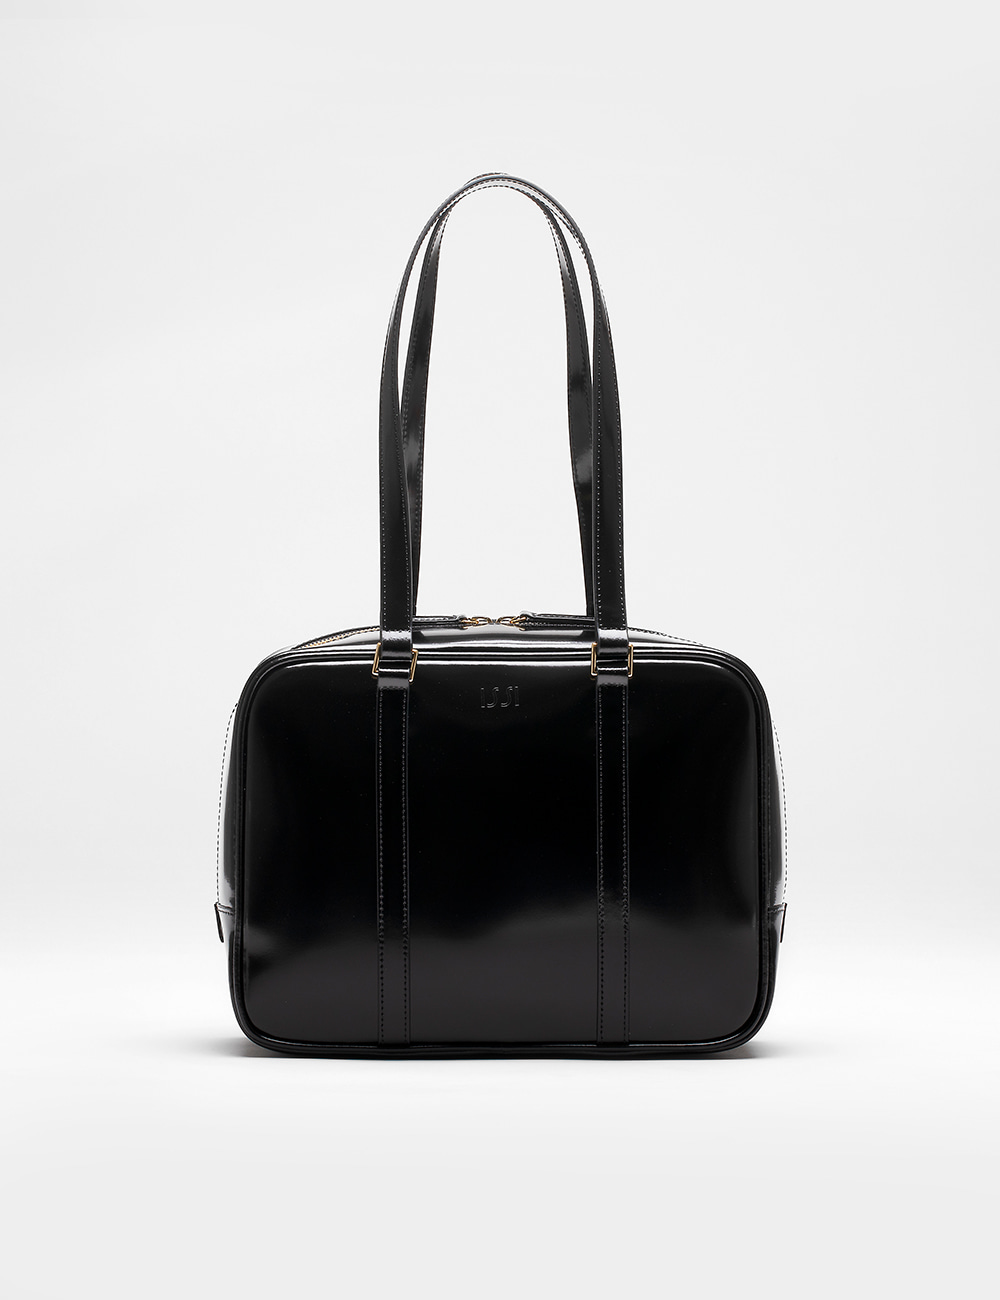 Club Bag, Black